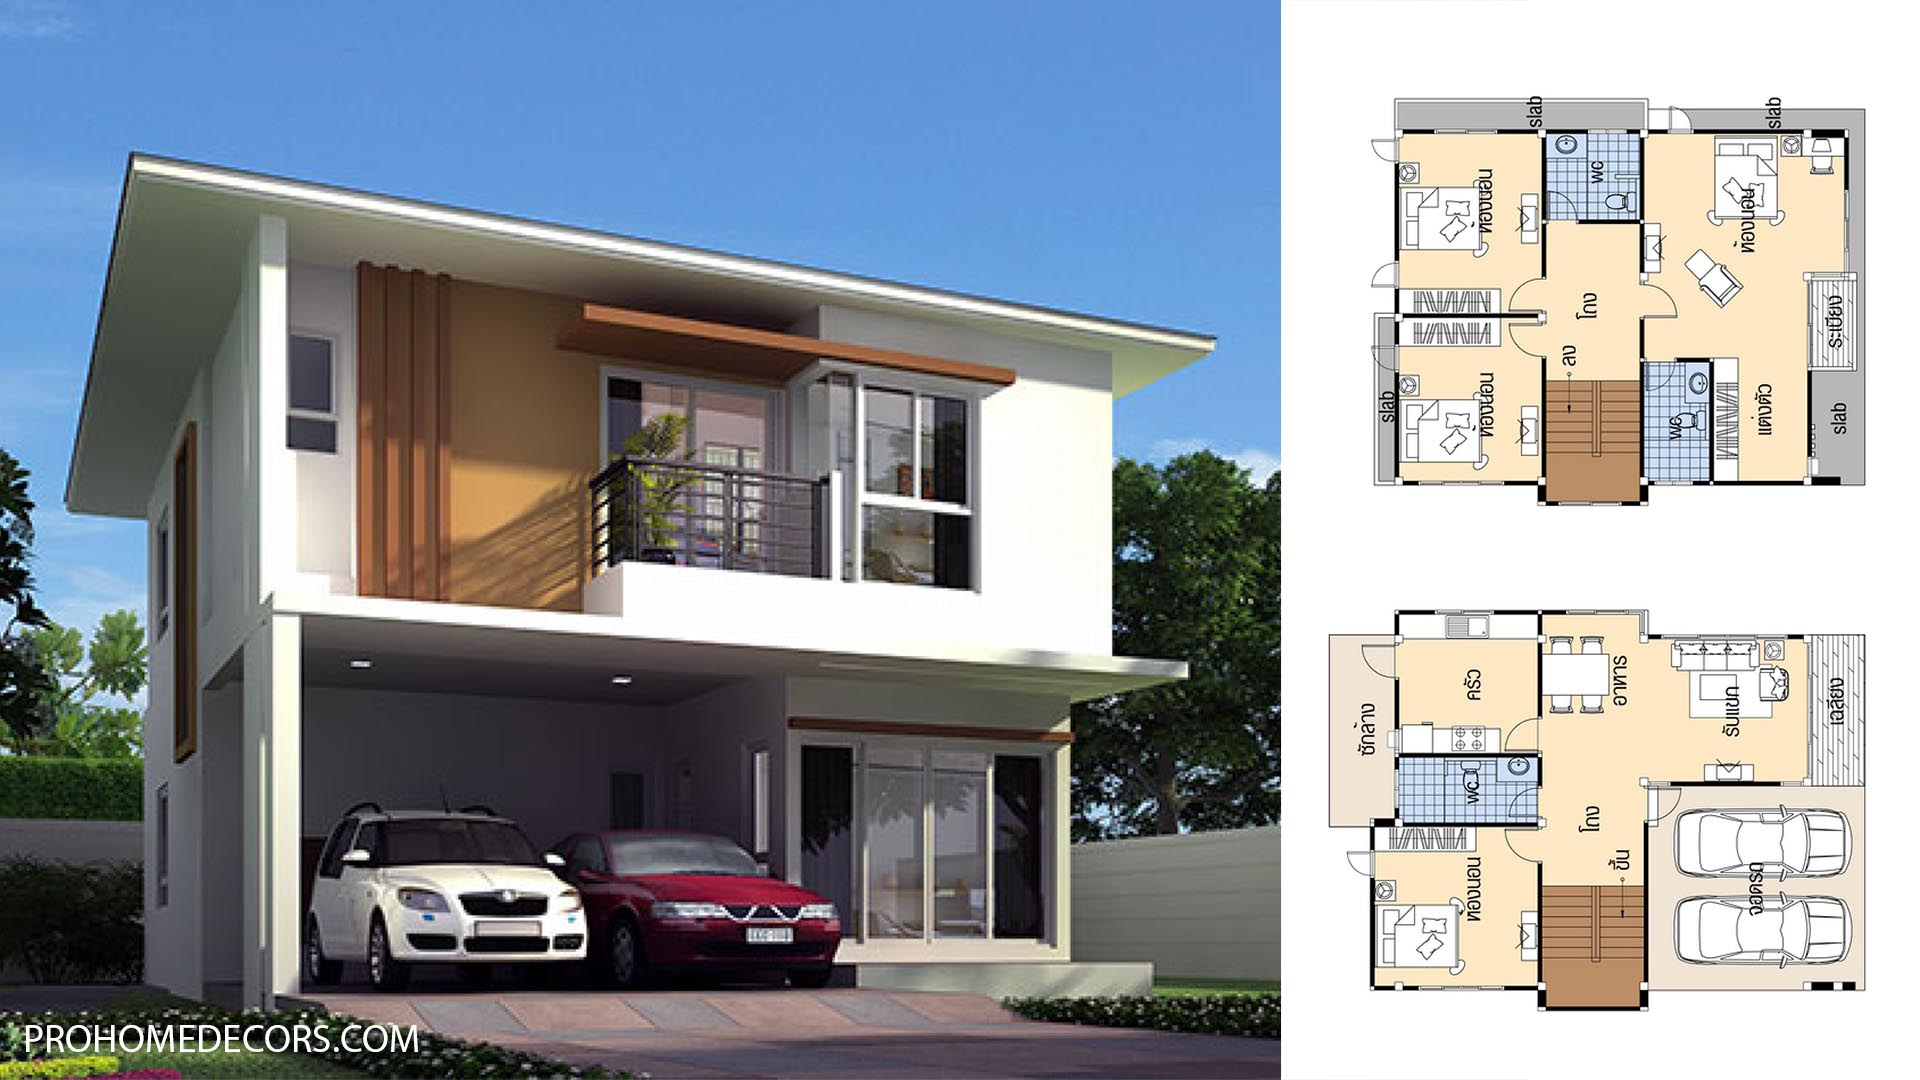 House Plans 9×12.5 with 4 Bedrooms